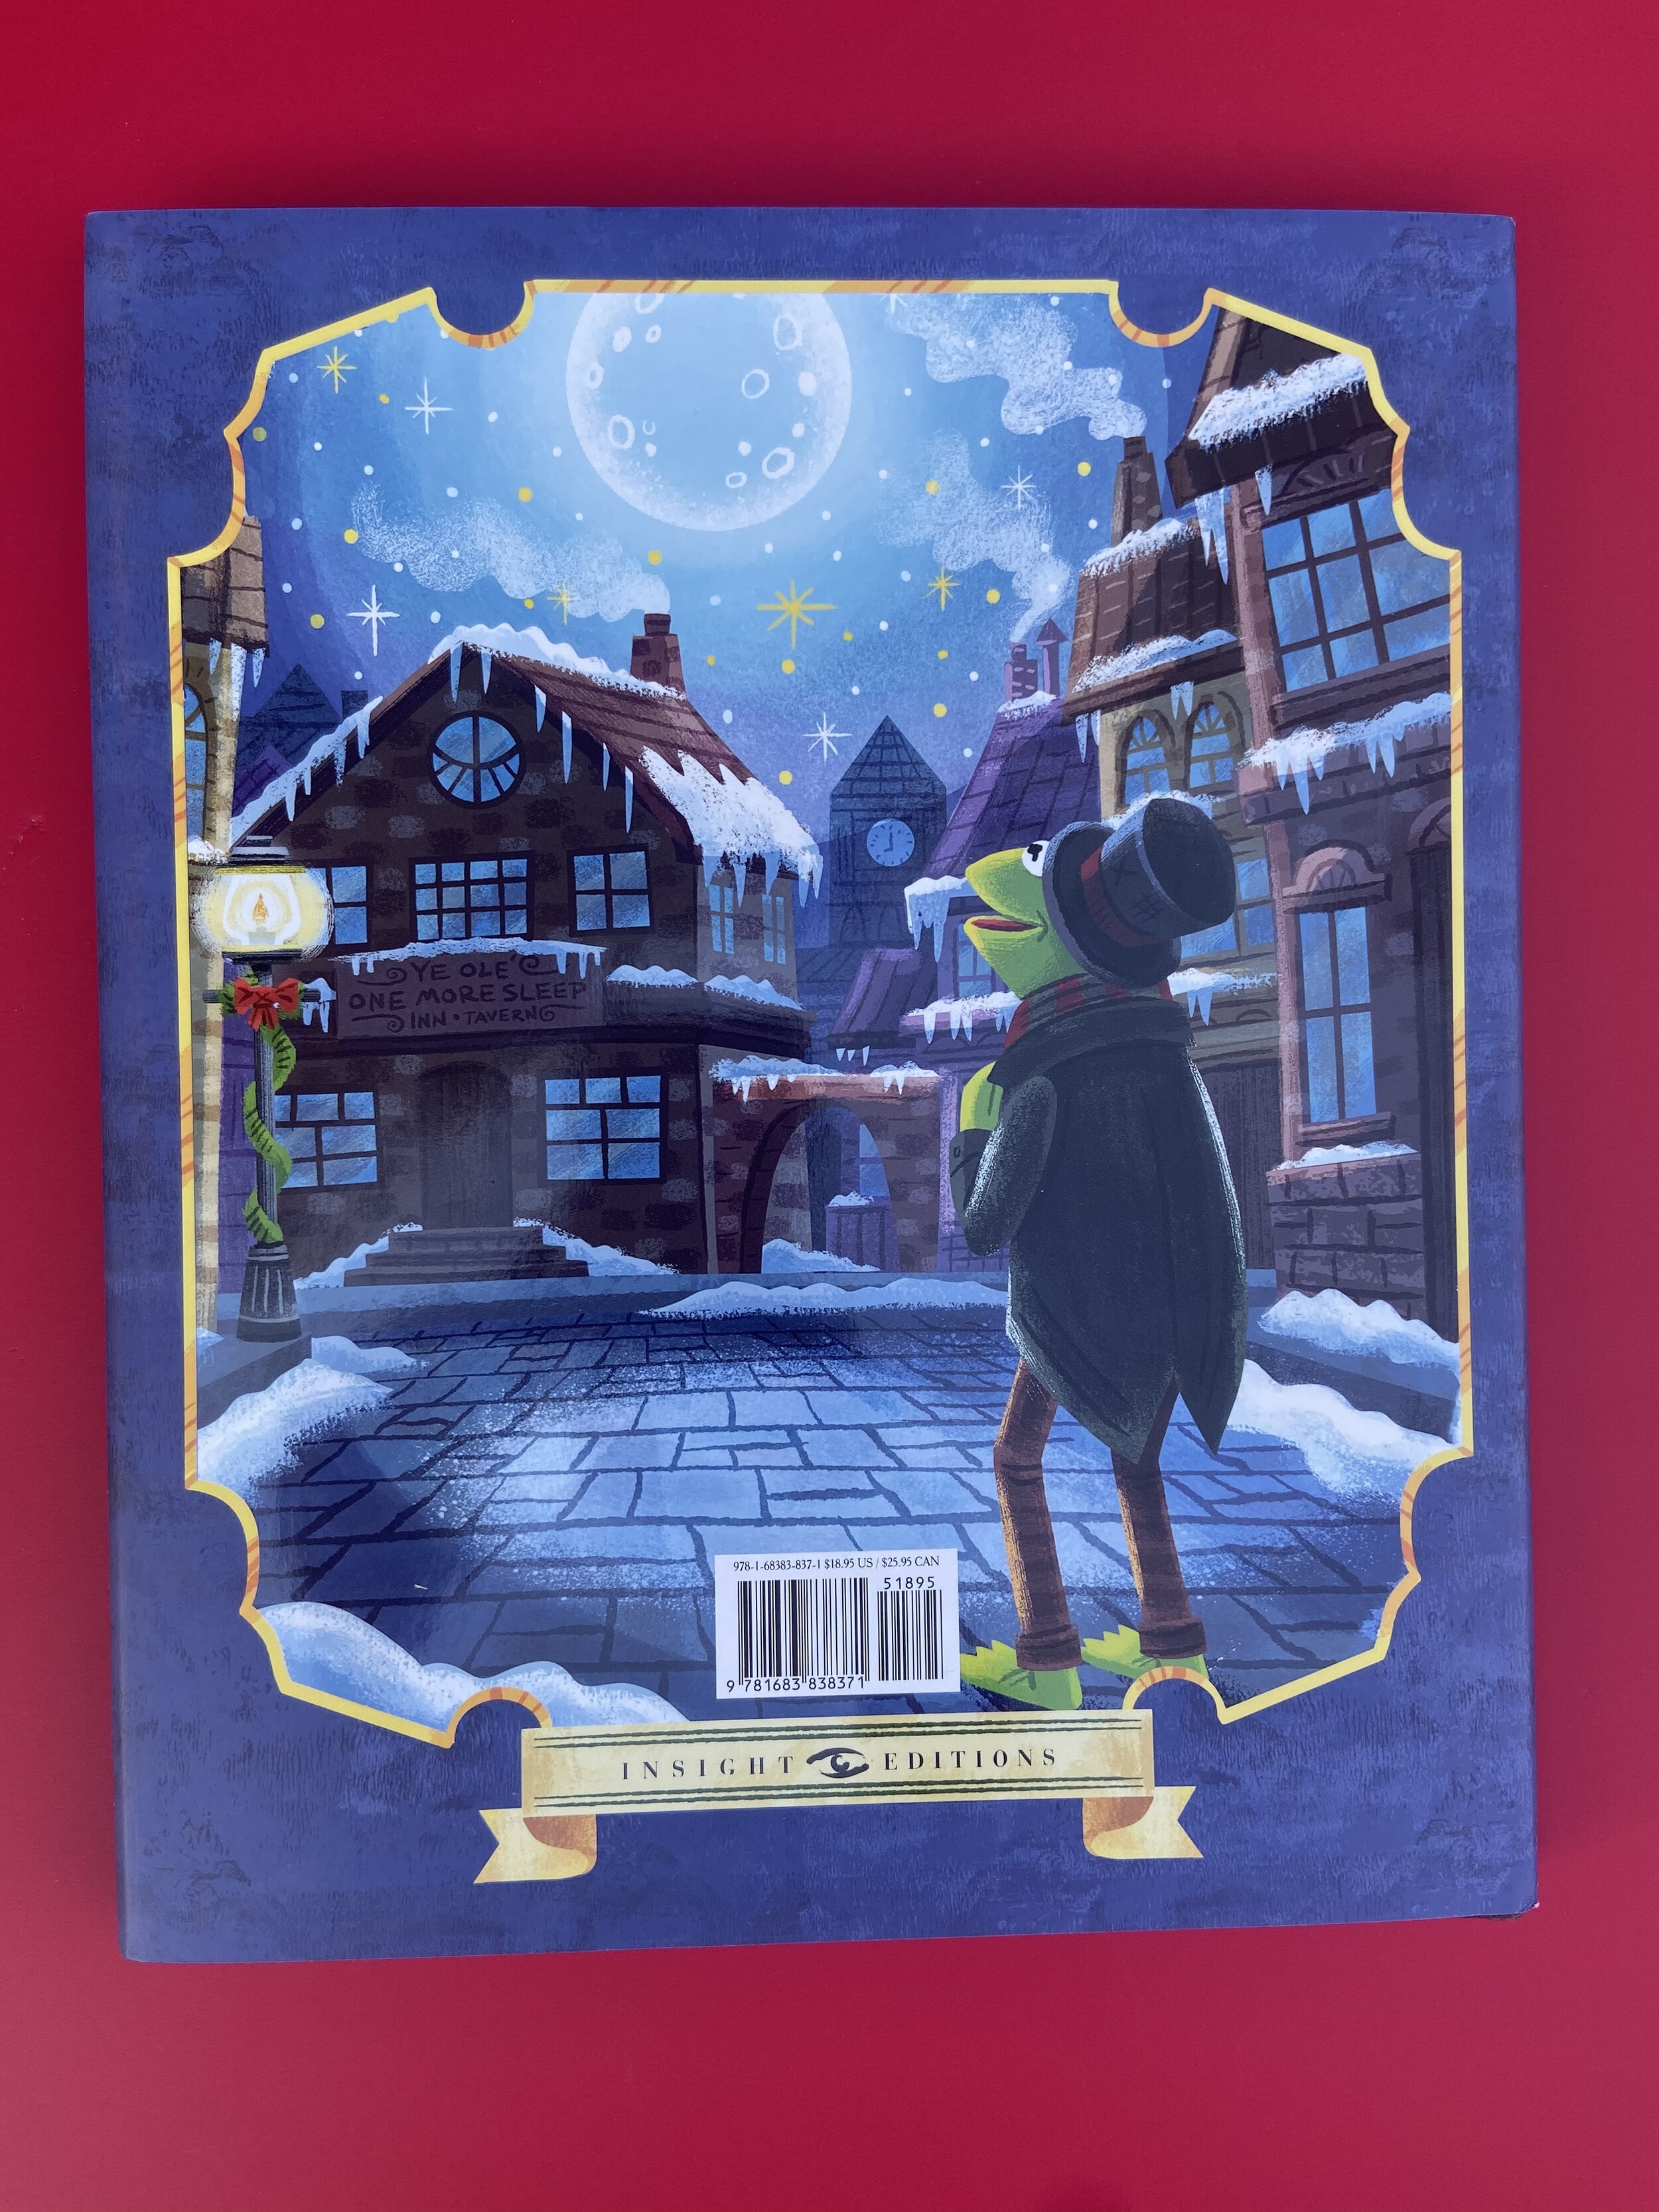 muppet christmas carol picture book.jpeg